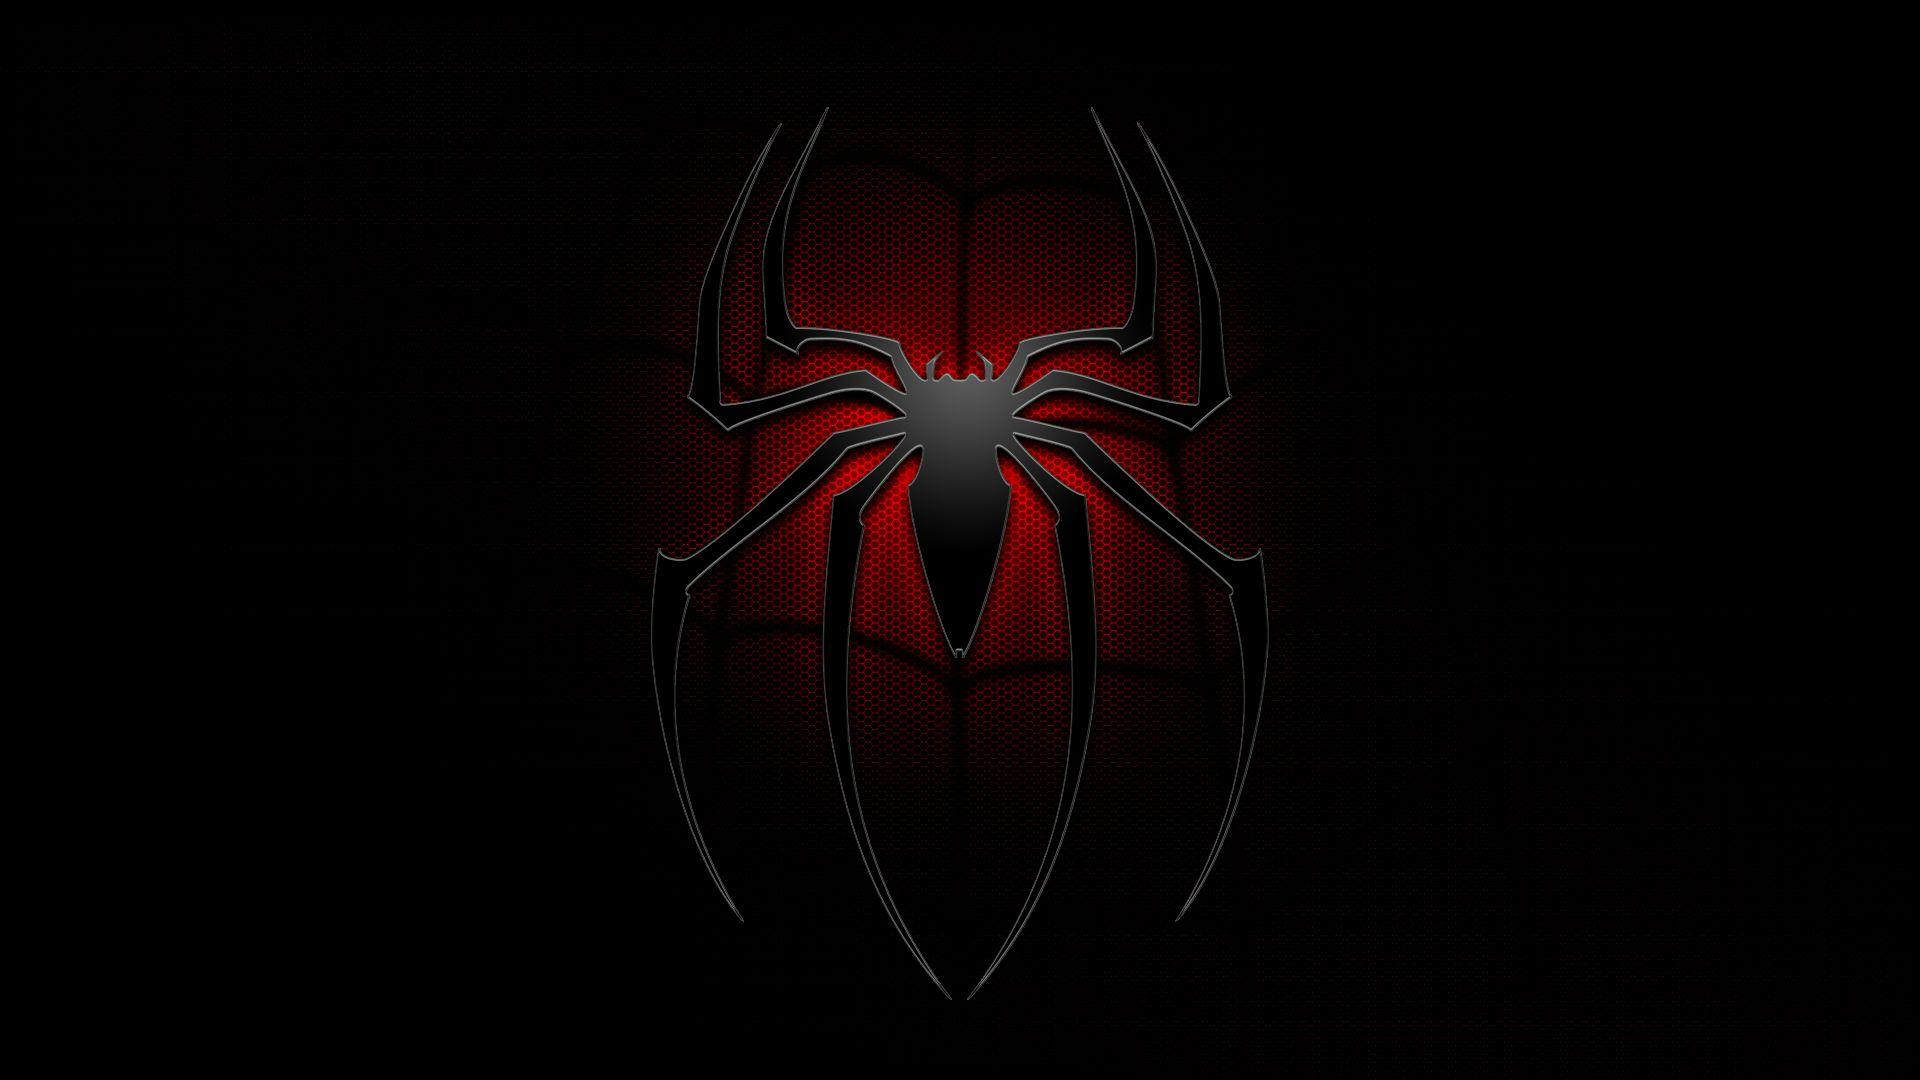 Black Spiderman Logo Wallpapers